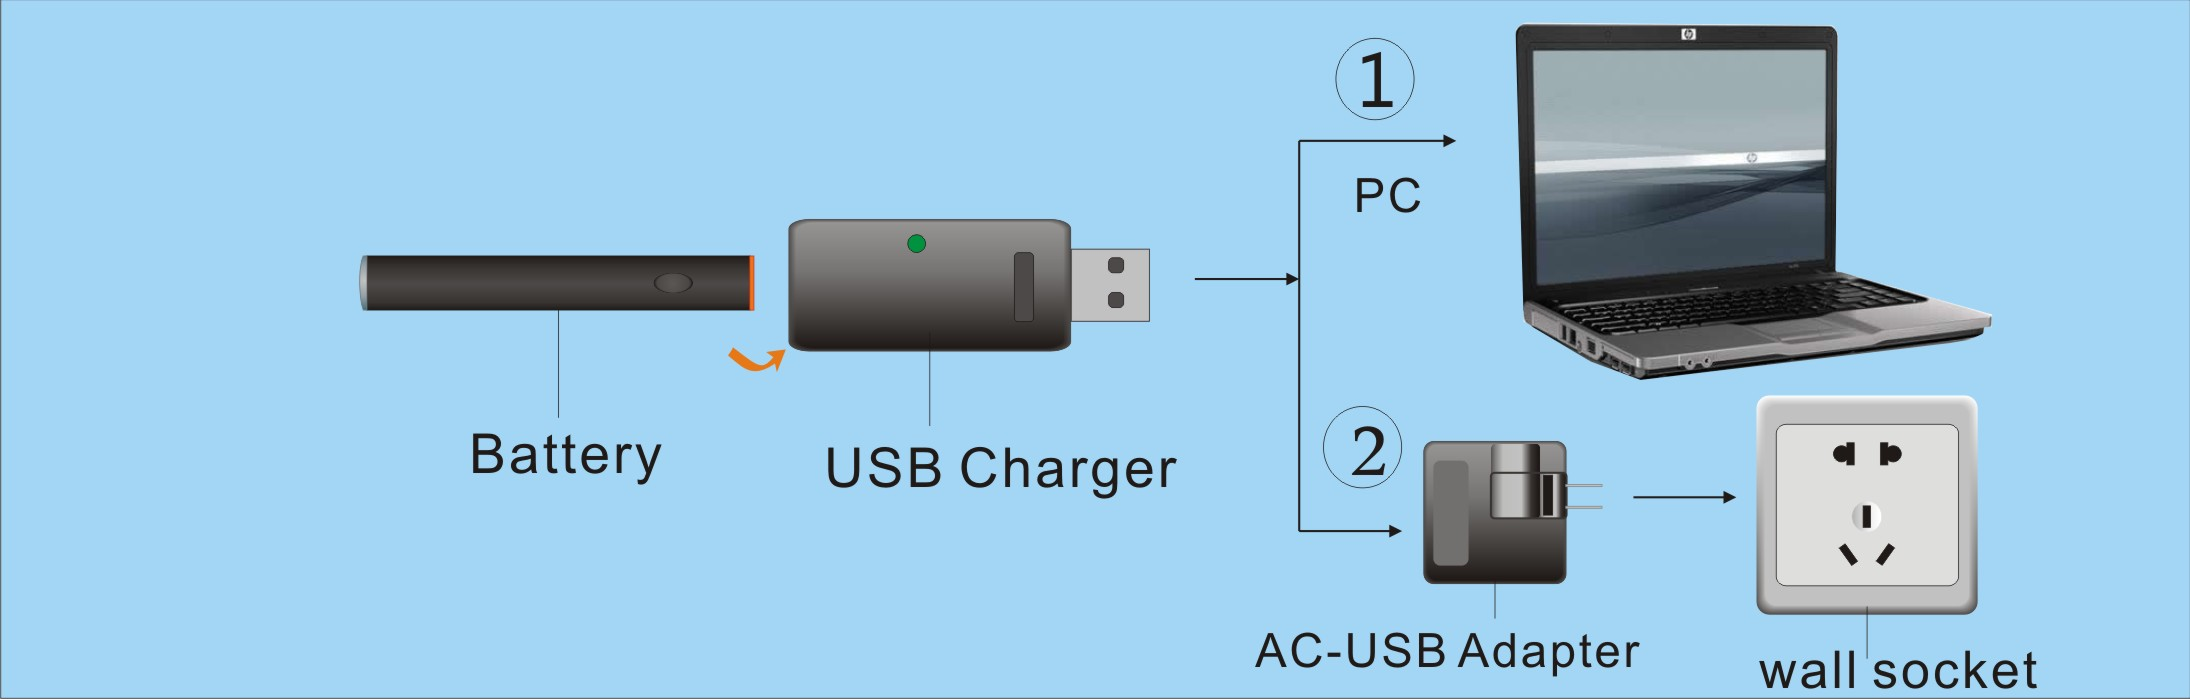 How to use 510 USB charger